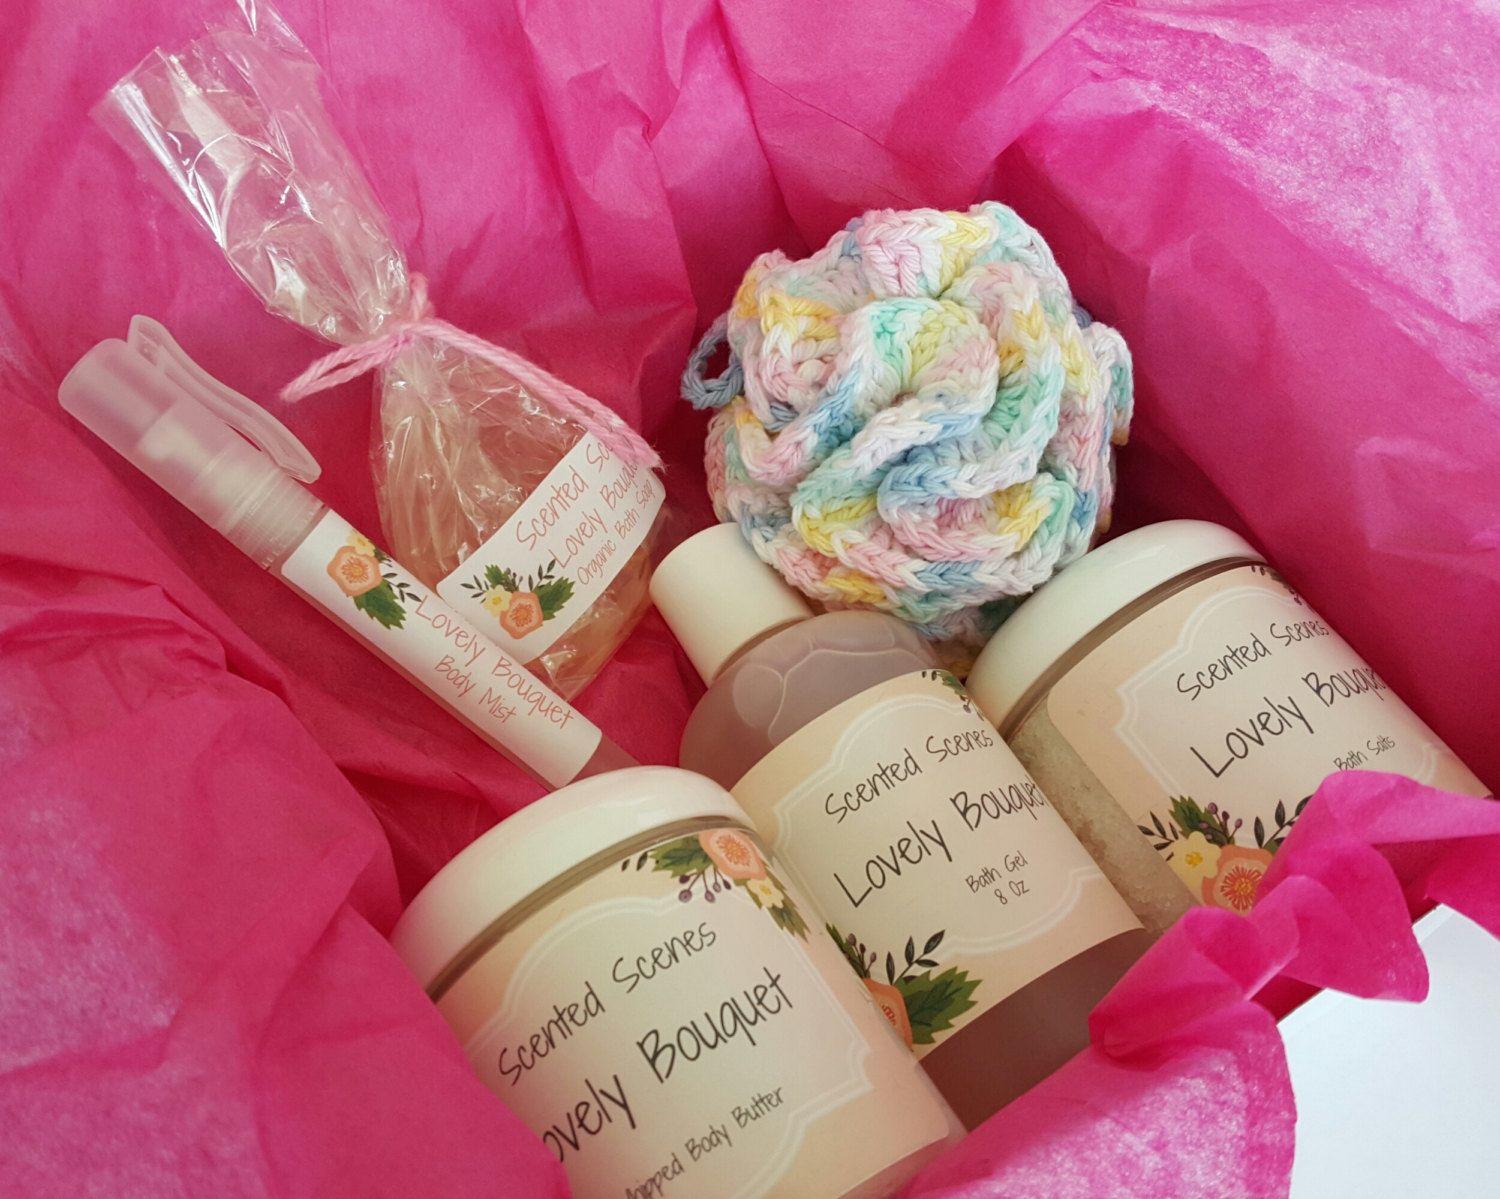 Bath and body gift box teacher appreciationnew mom relaxing gift bath gift box organic spa beauty gift mothers day gift idea easter gift negle Choice Image